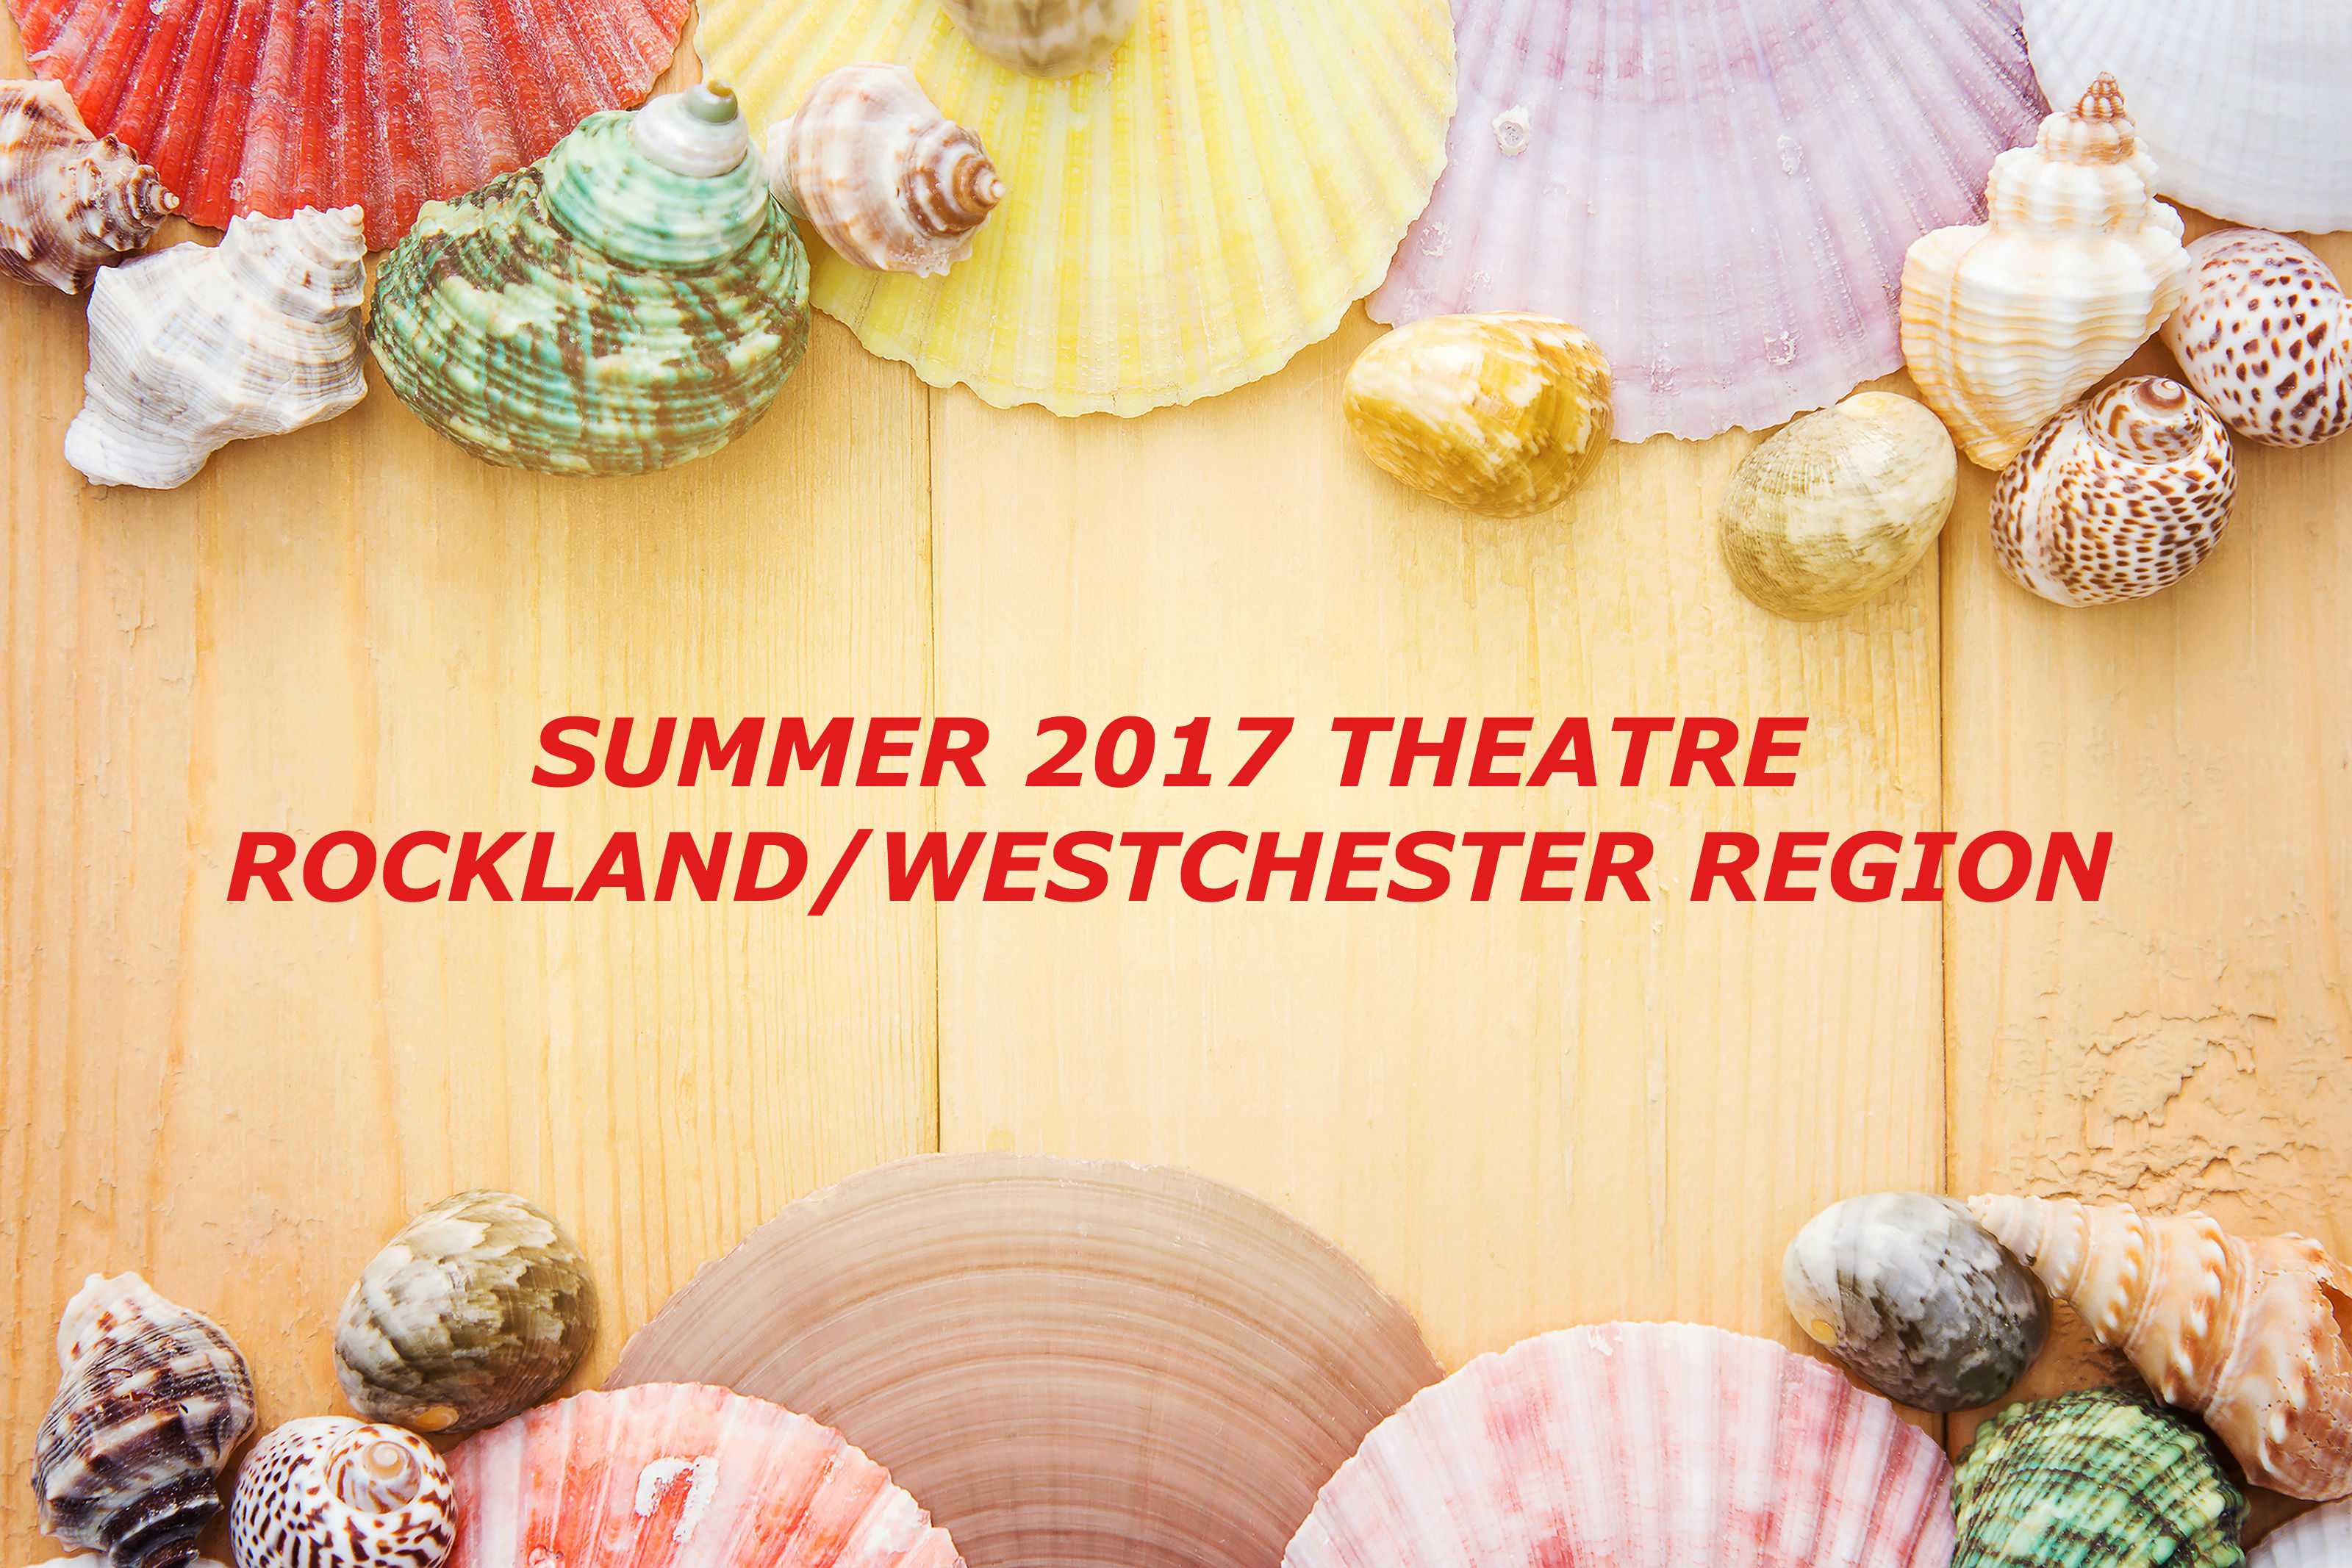 Upcoming Rockland/Westchester Theatre